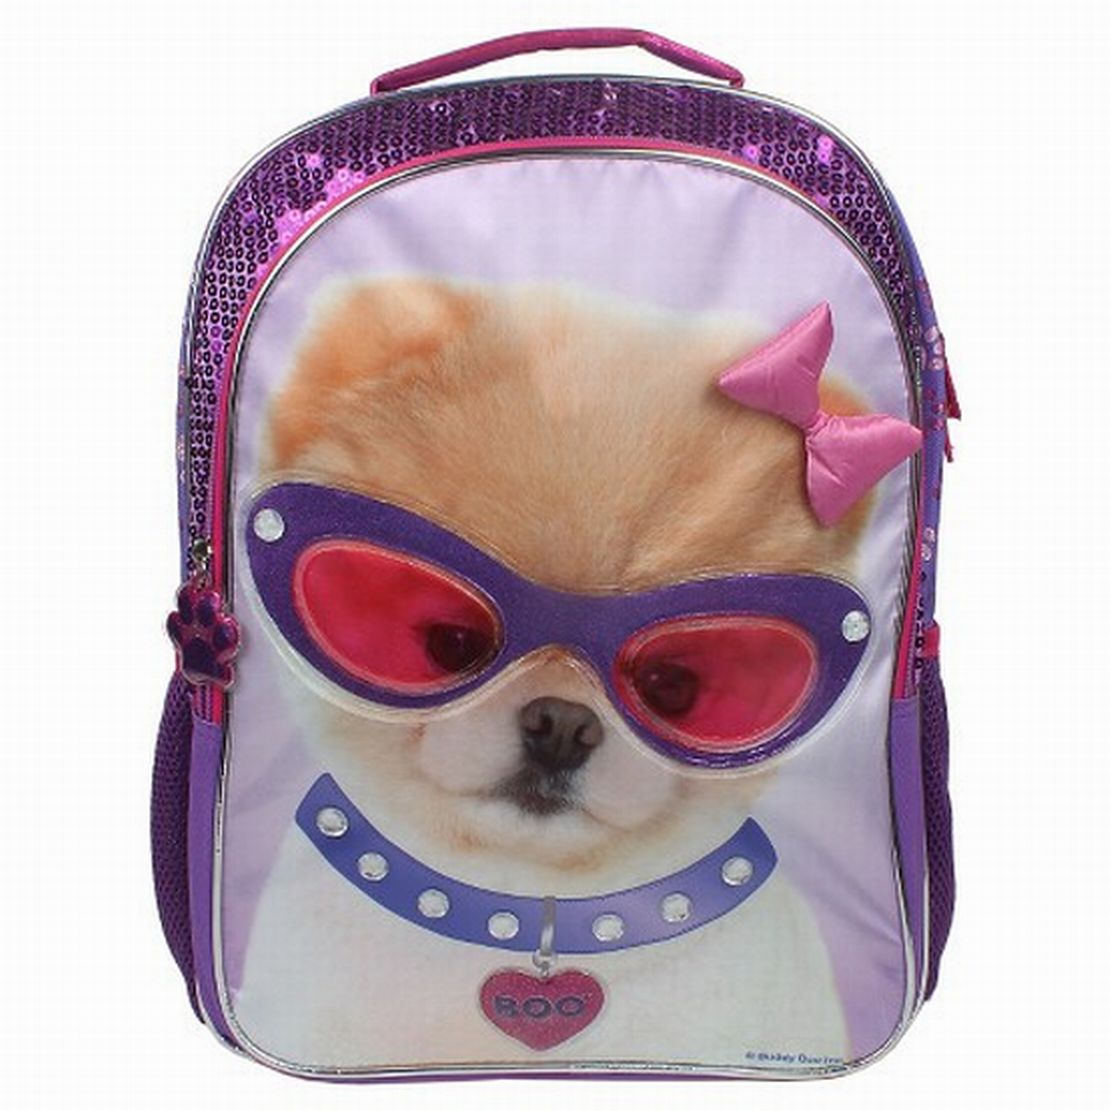 Boo the World's Cutest Dog Backpack With Purple Sequins School ...